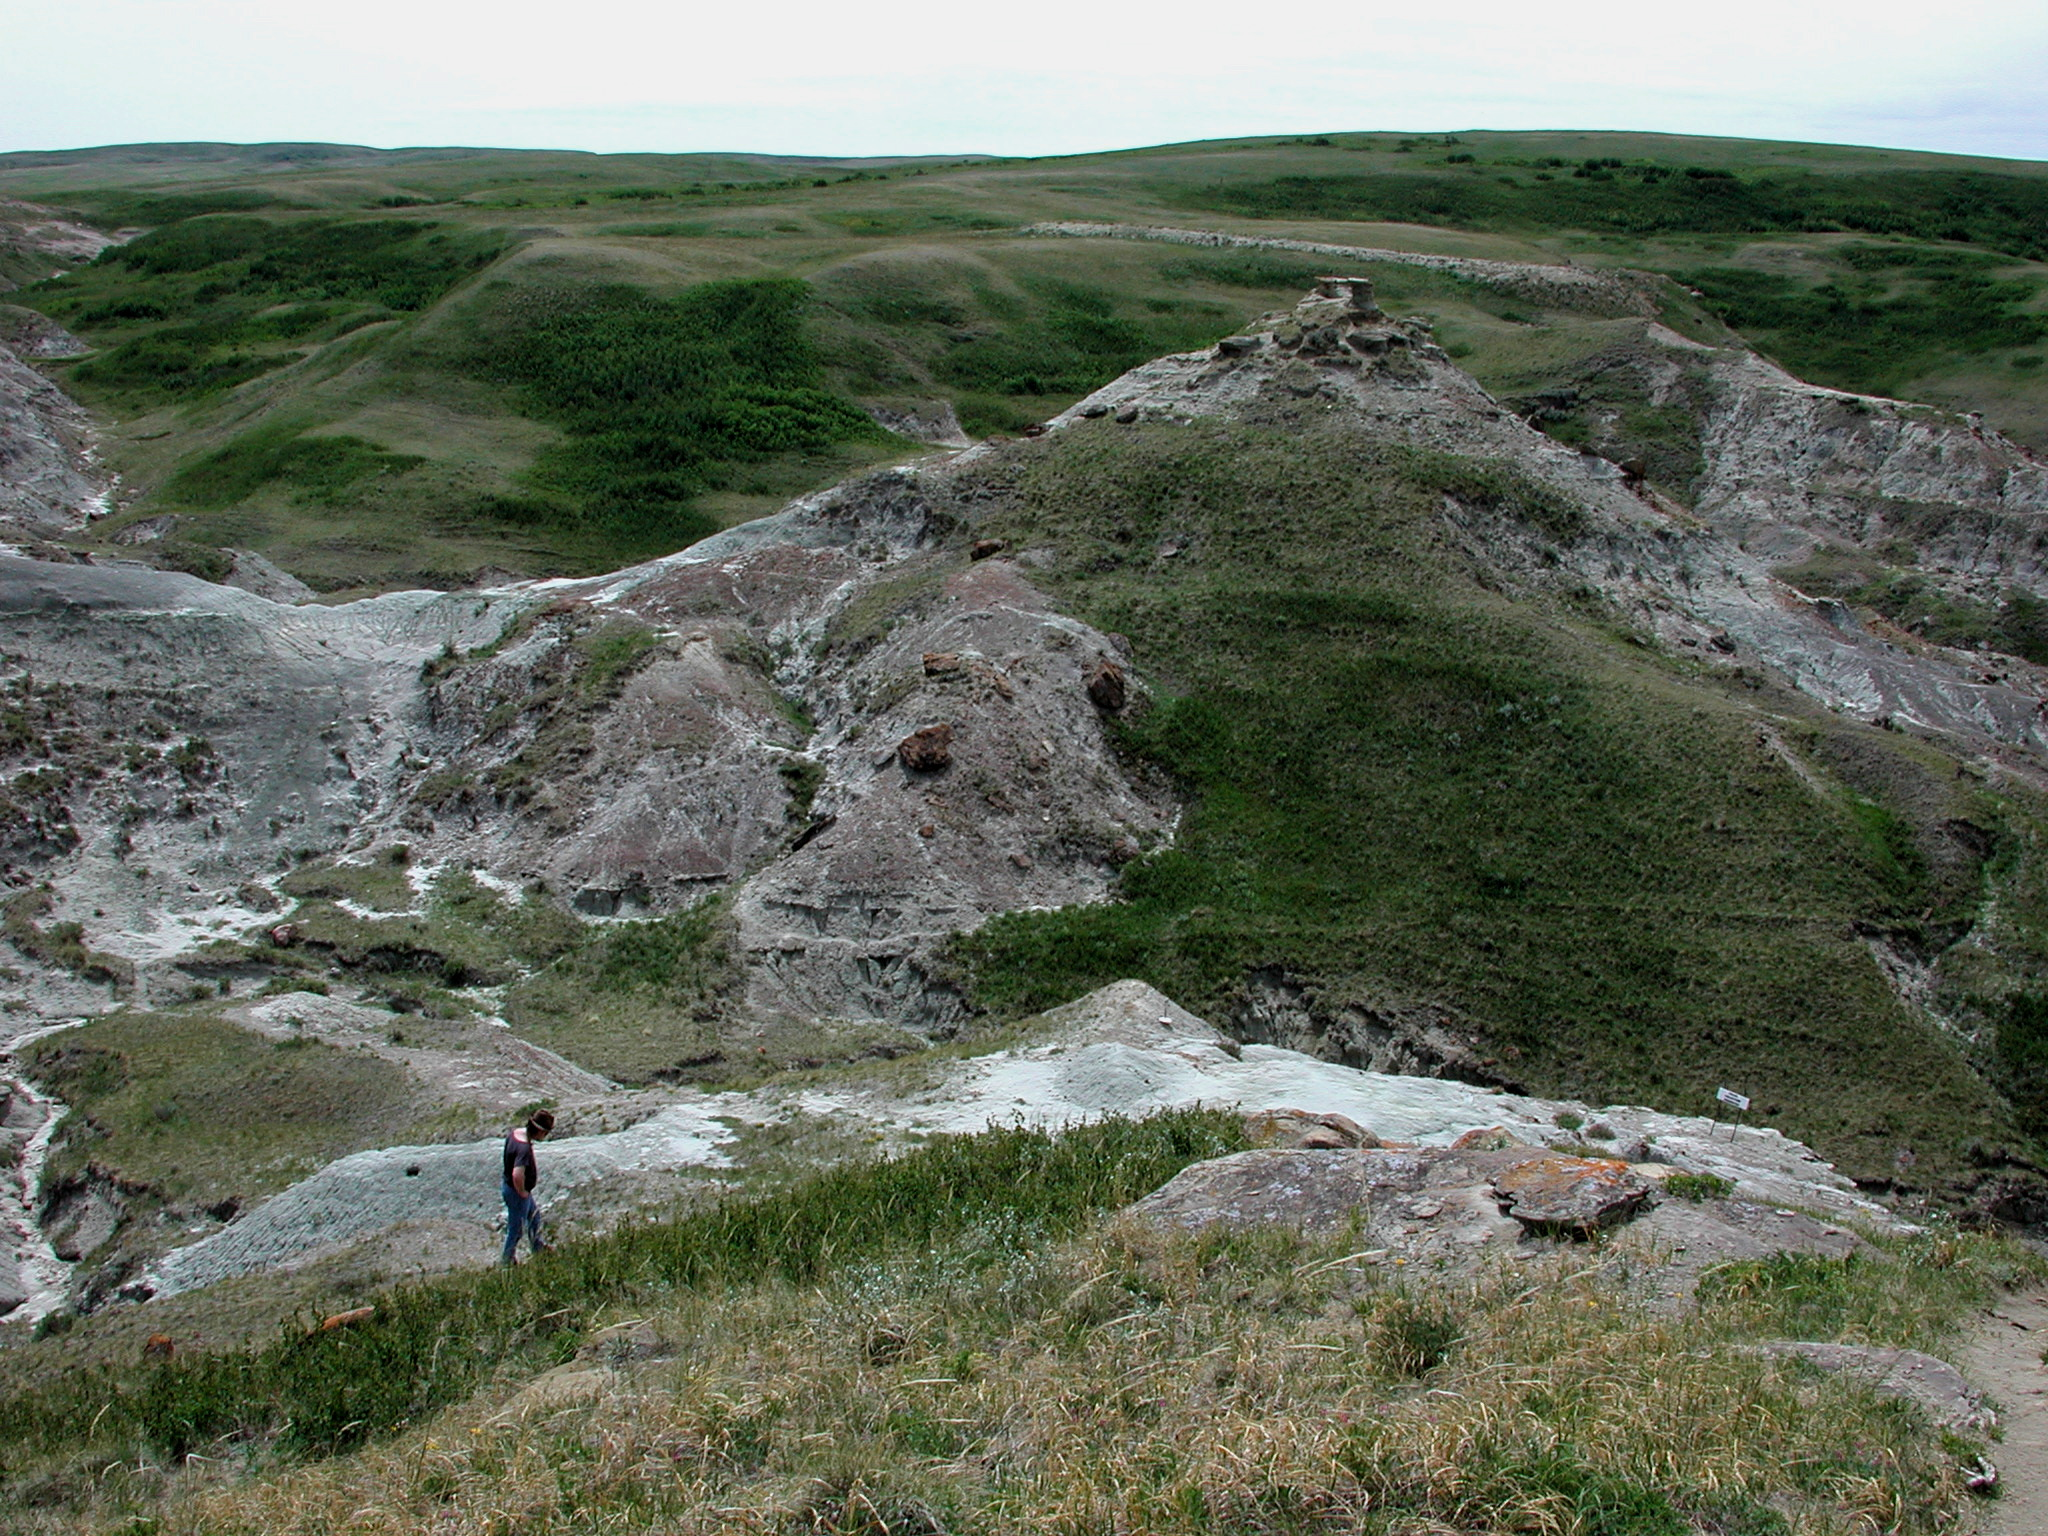 Photograph of the 'Devil's Coulee' field area in southern Alberta, Canada, which is home to an abundance of fossilised dinosaur eggshells. Image used with kind permission of Dr Darla K. Zelenitsky, University of Calgary.